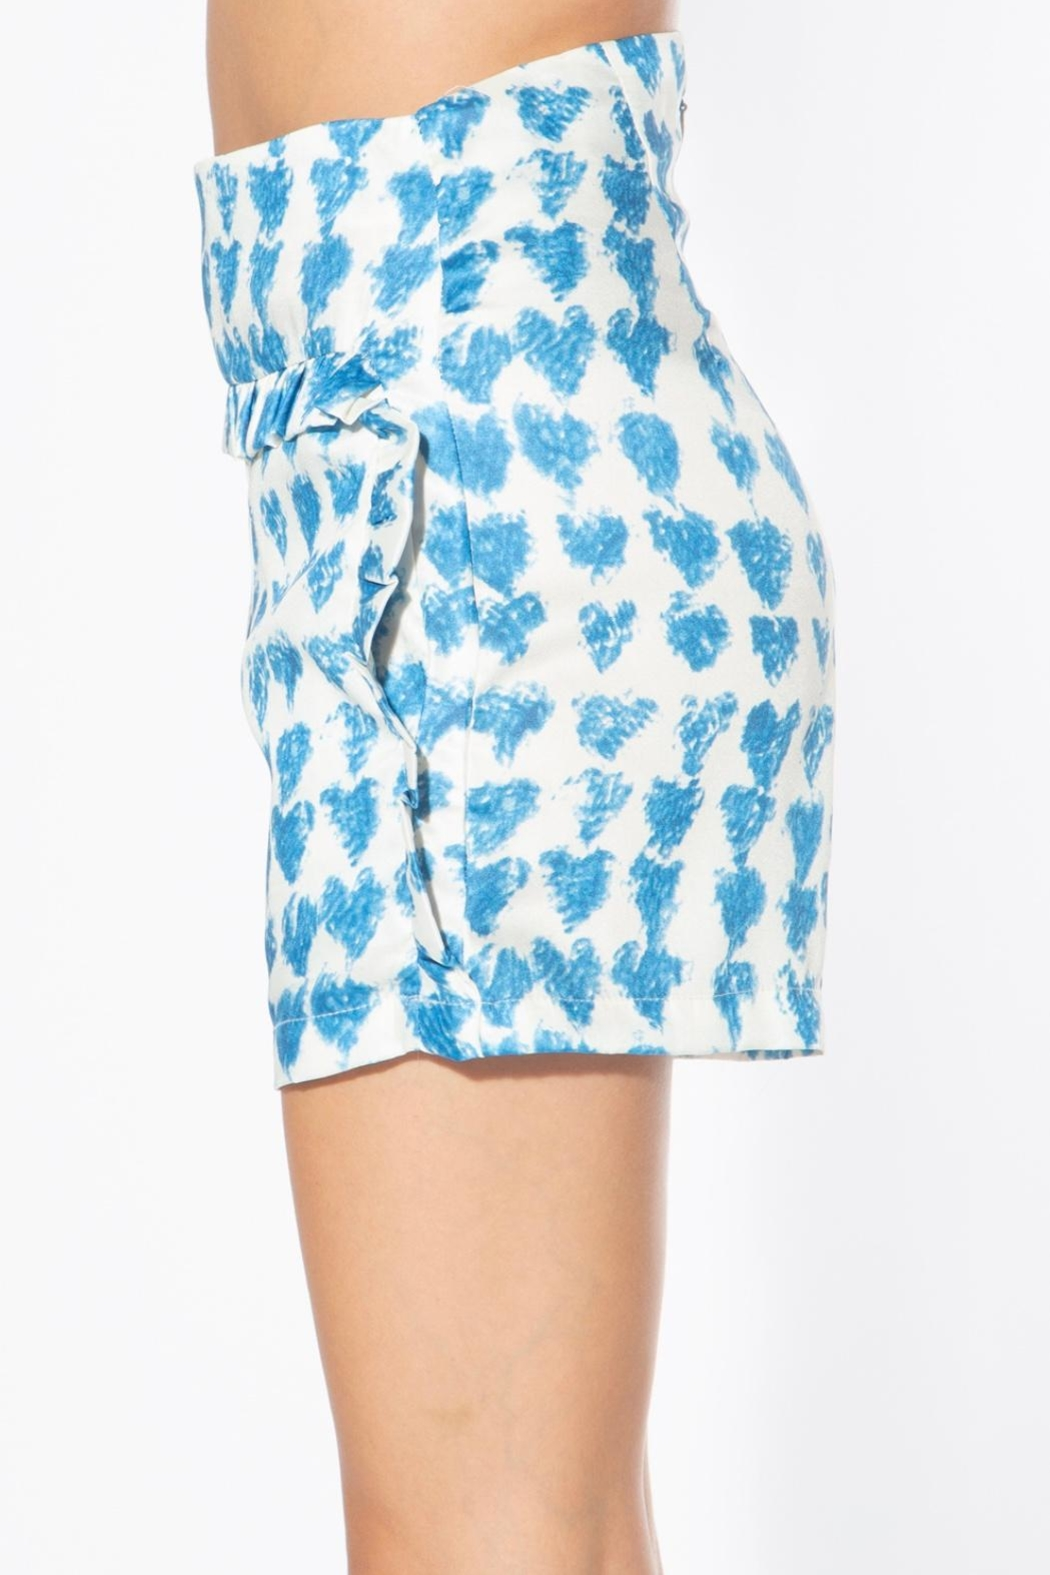 BEULAH STYLE Heart Satin Shorts - Front Full Image